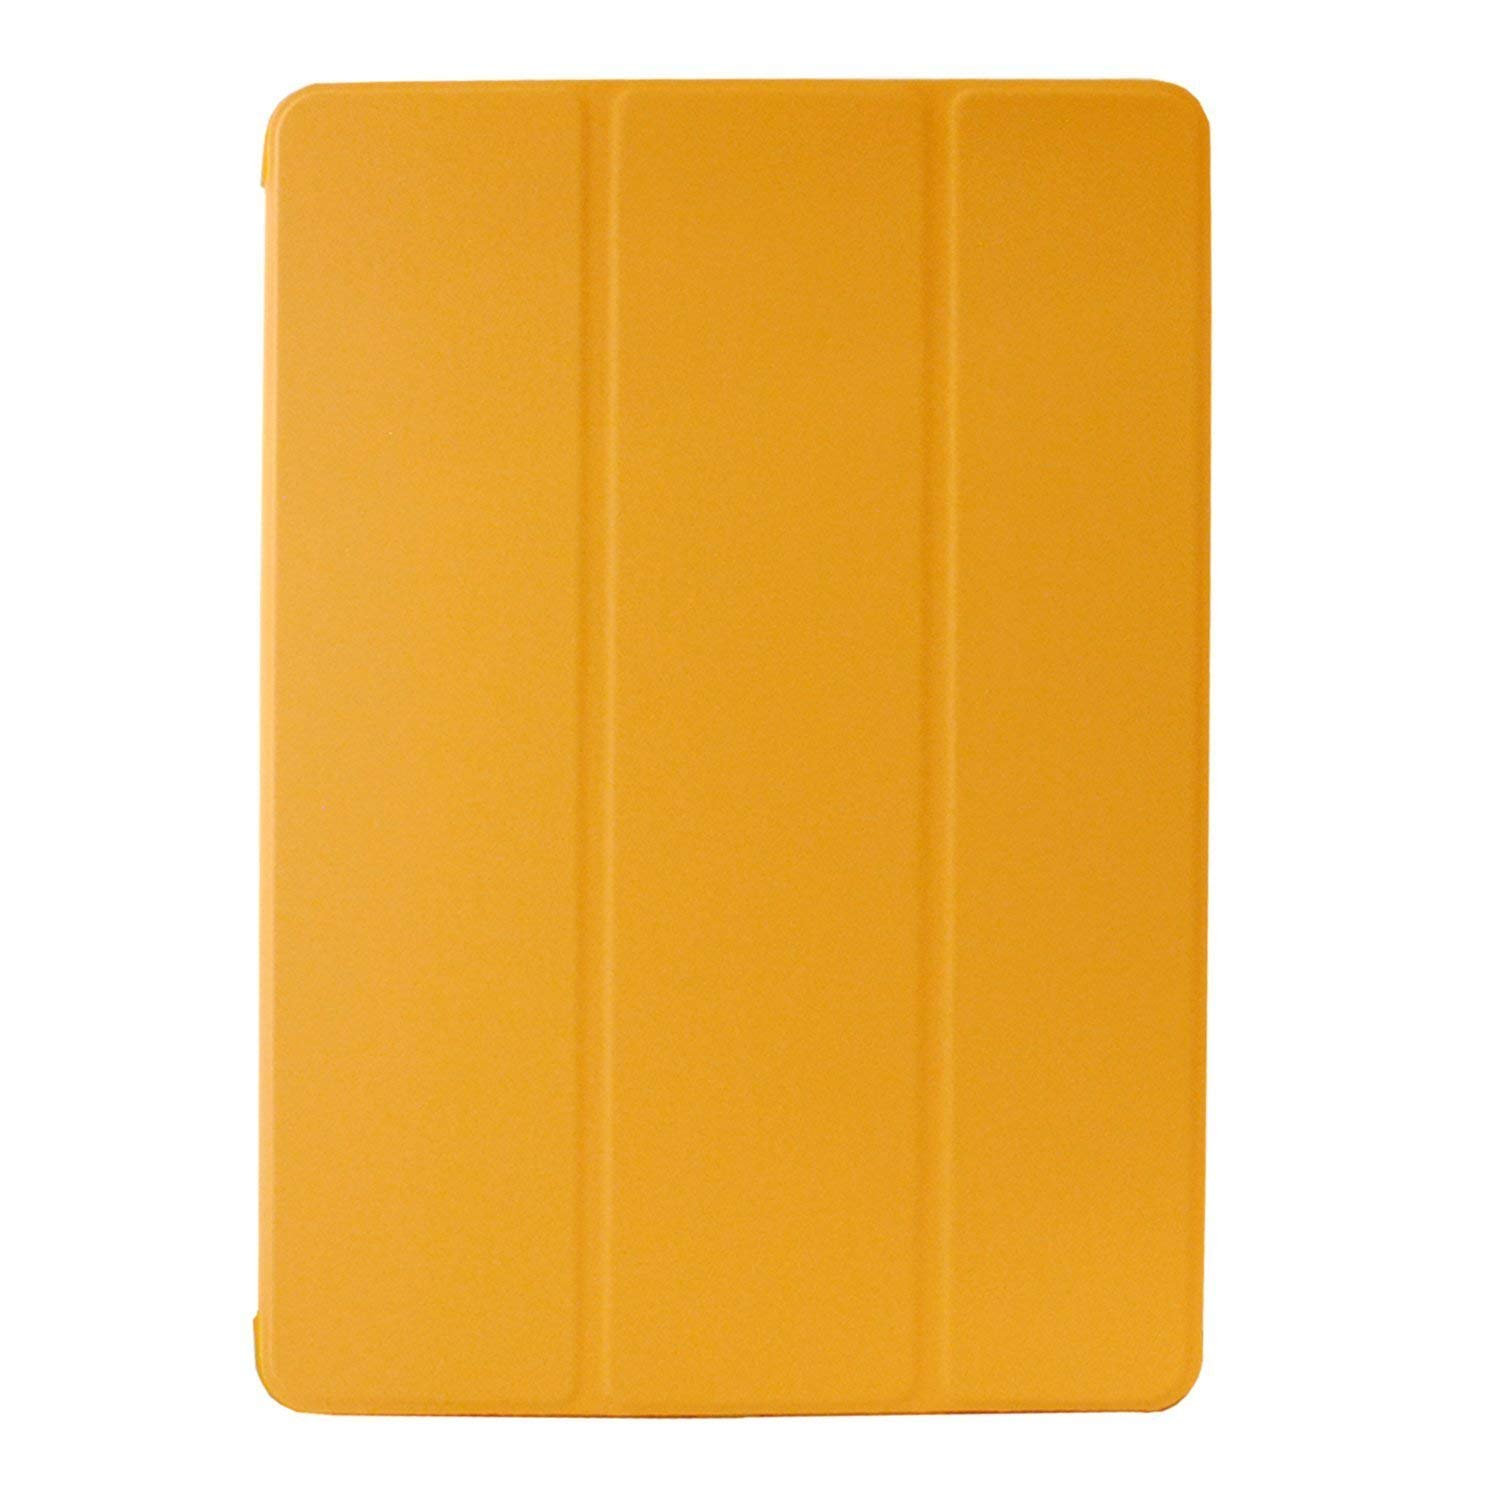 MIIU by Digiparts Ultra Thin Magnetic Smart Cover & Clear Back Case for Apple iPad Air(5th Gen), Yellow - image 4 of 5